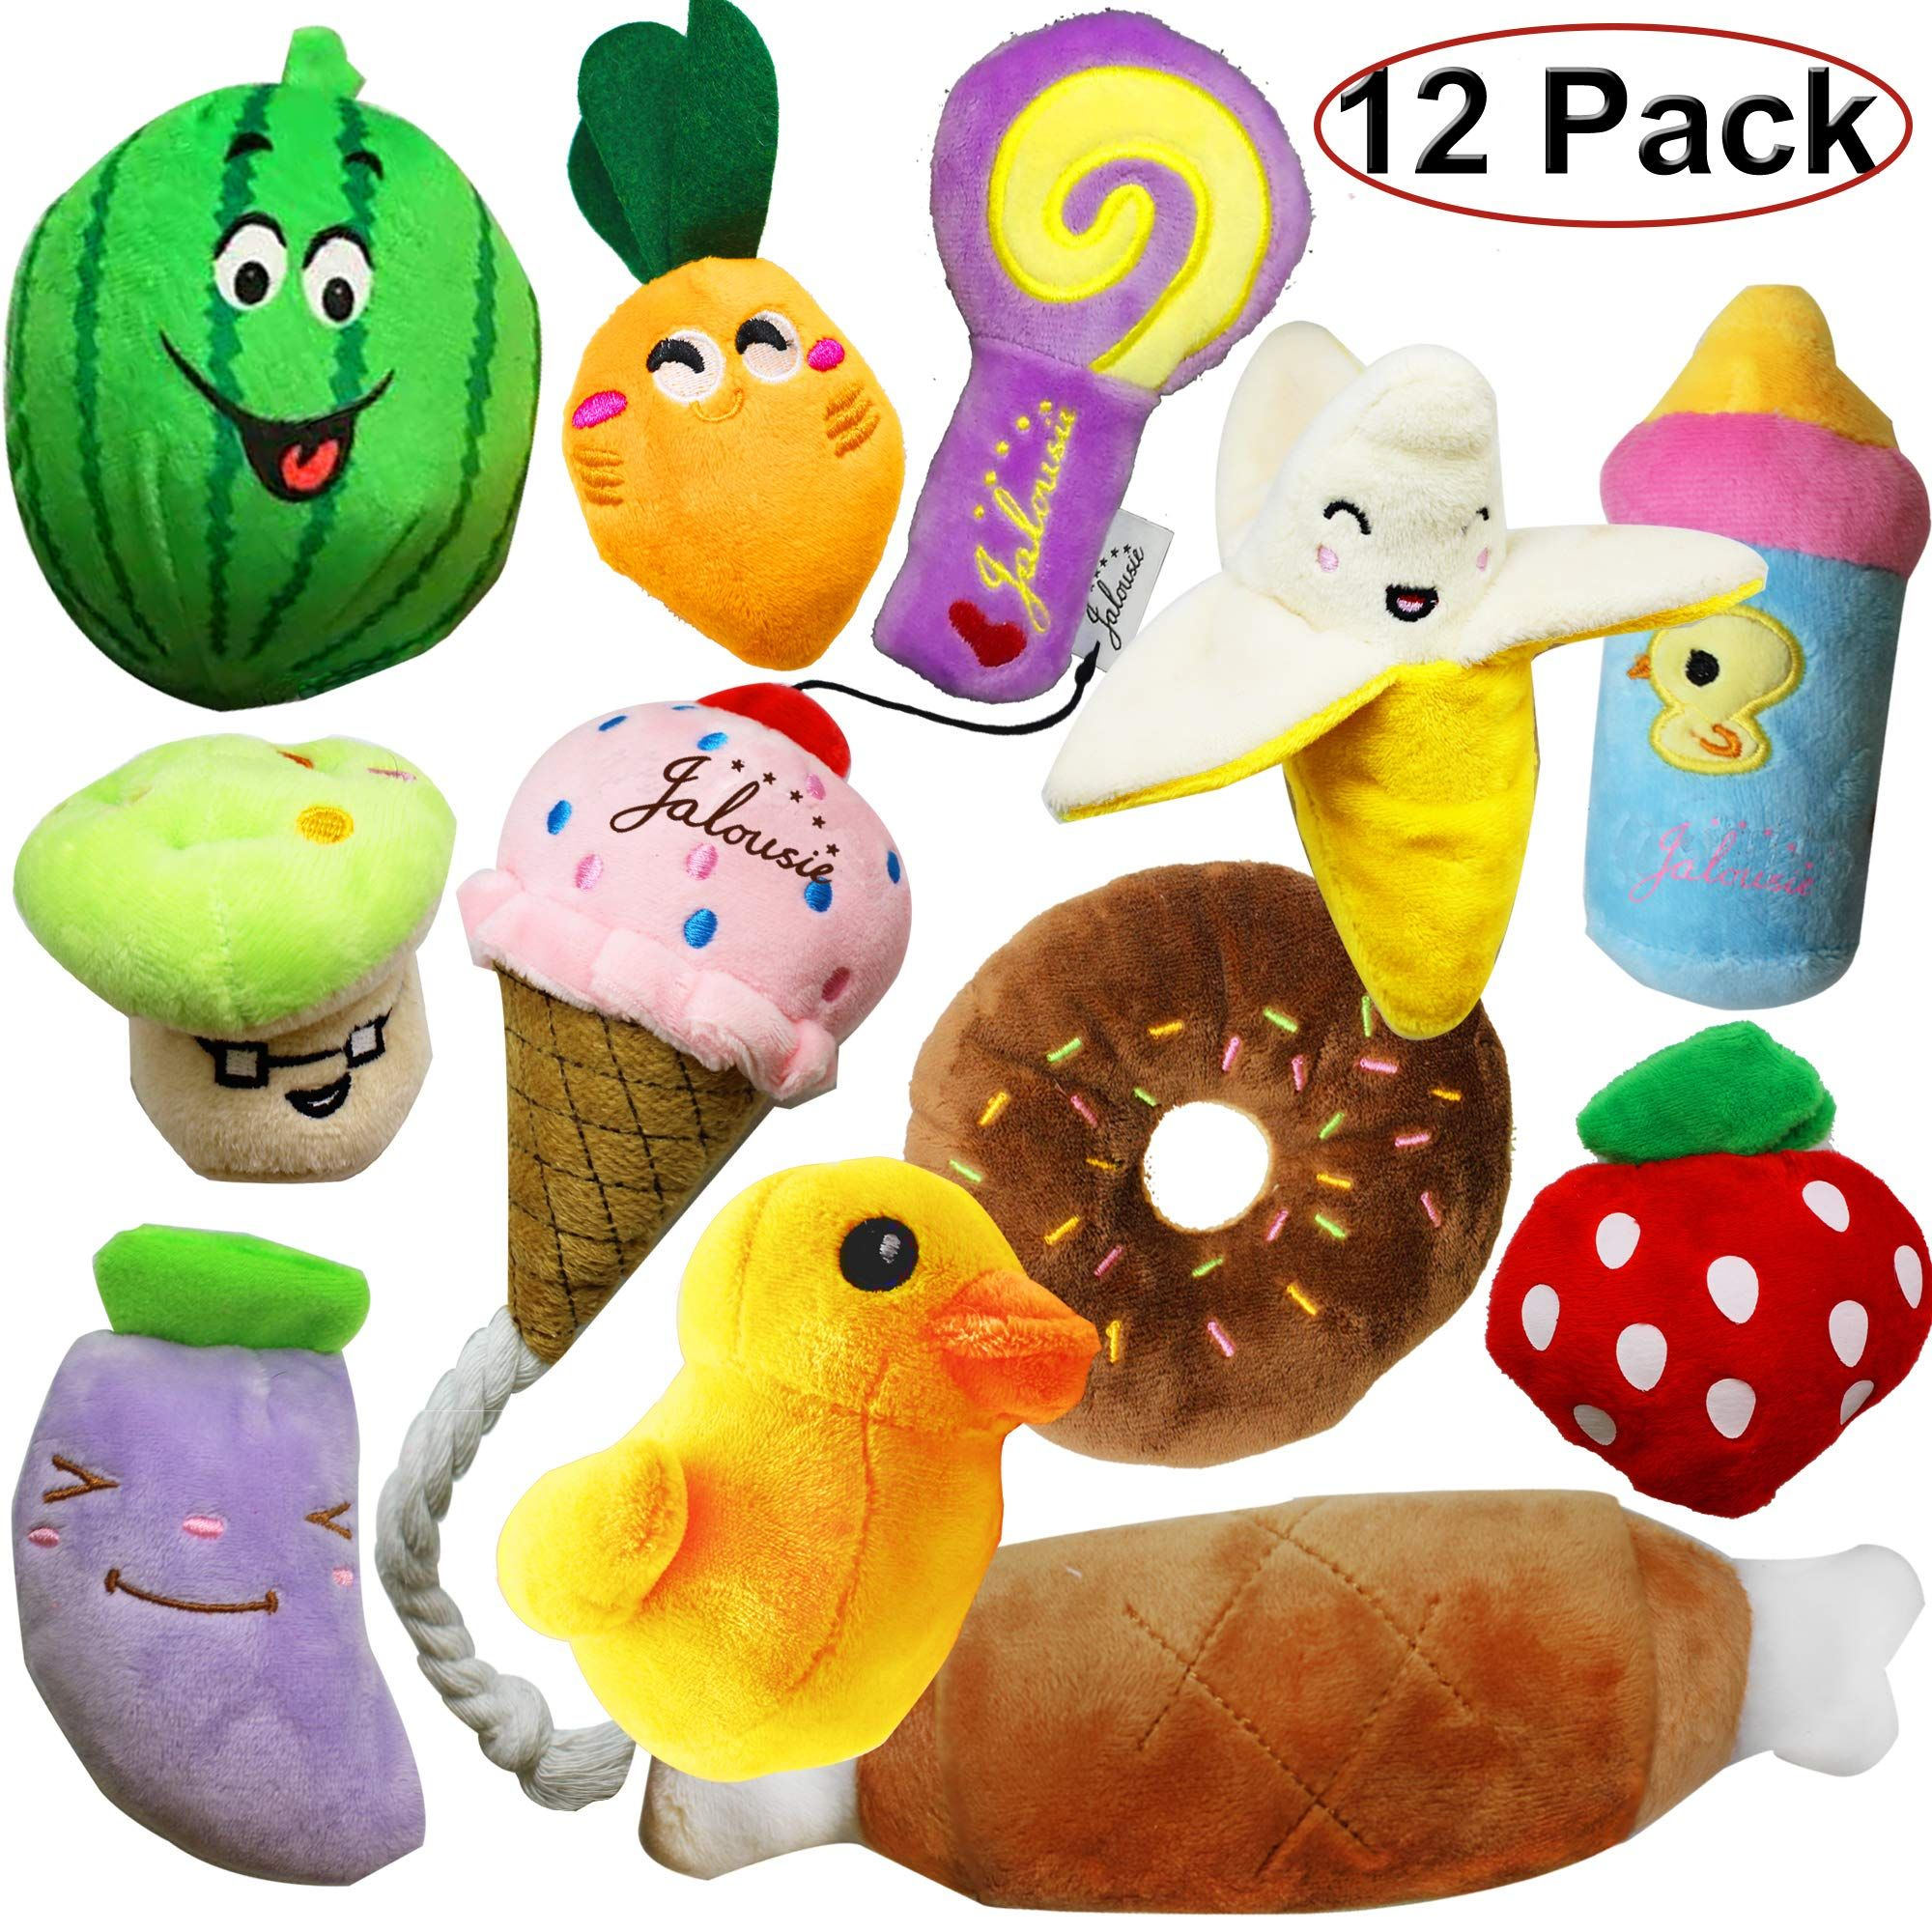 Jalousie 12 Pack Dog Squeaky Toys Cute Plush Toys For Small Medium